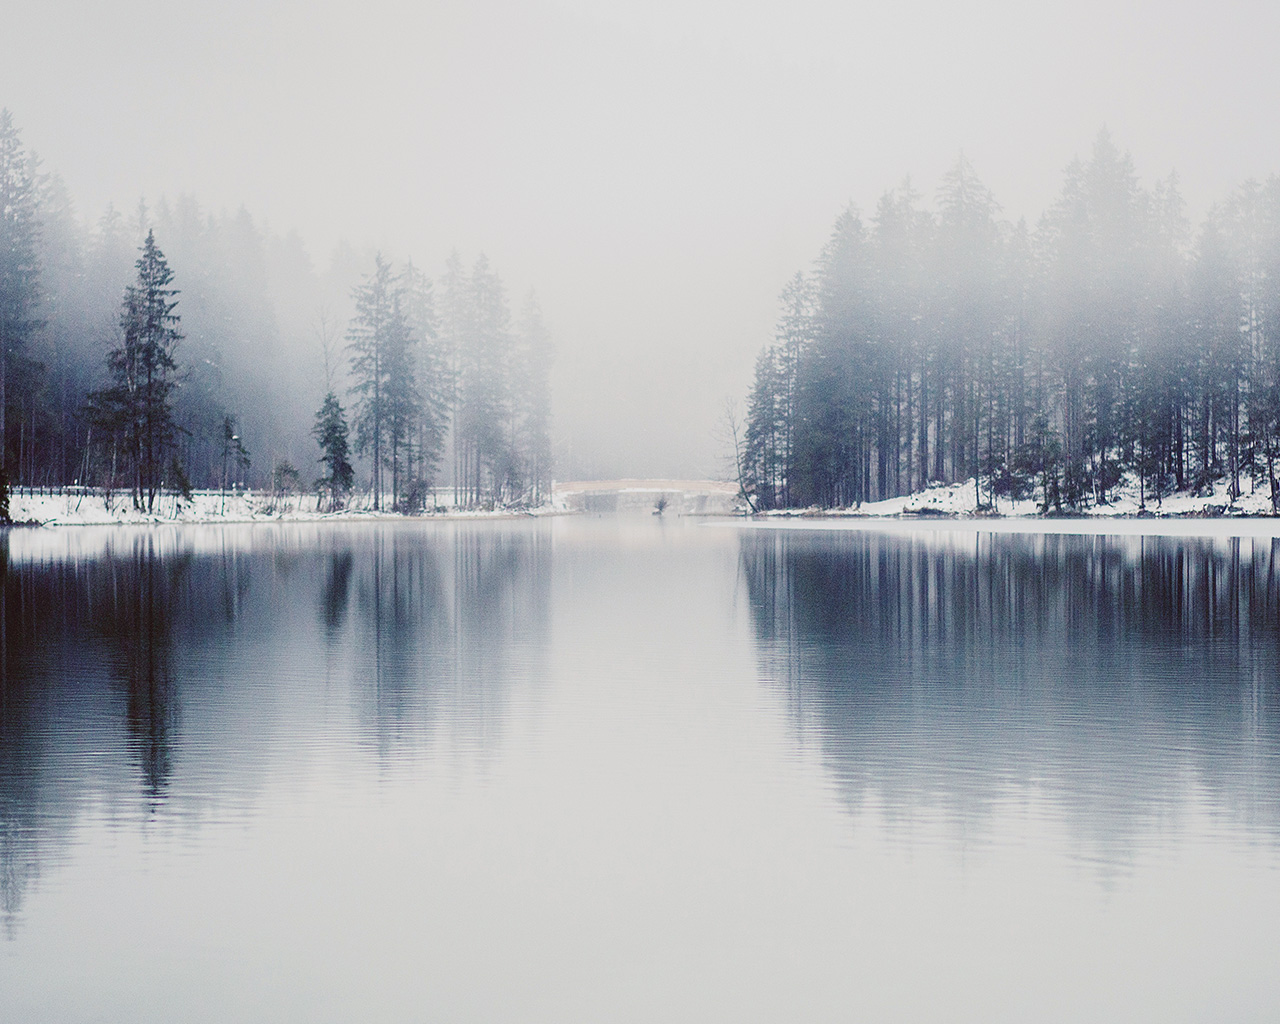 Cute Apple Logo Wallpaper Nk06 Winter Lake White Blue Wood Nature Fog Wallpaper